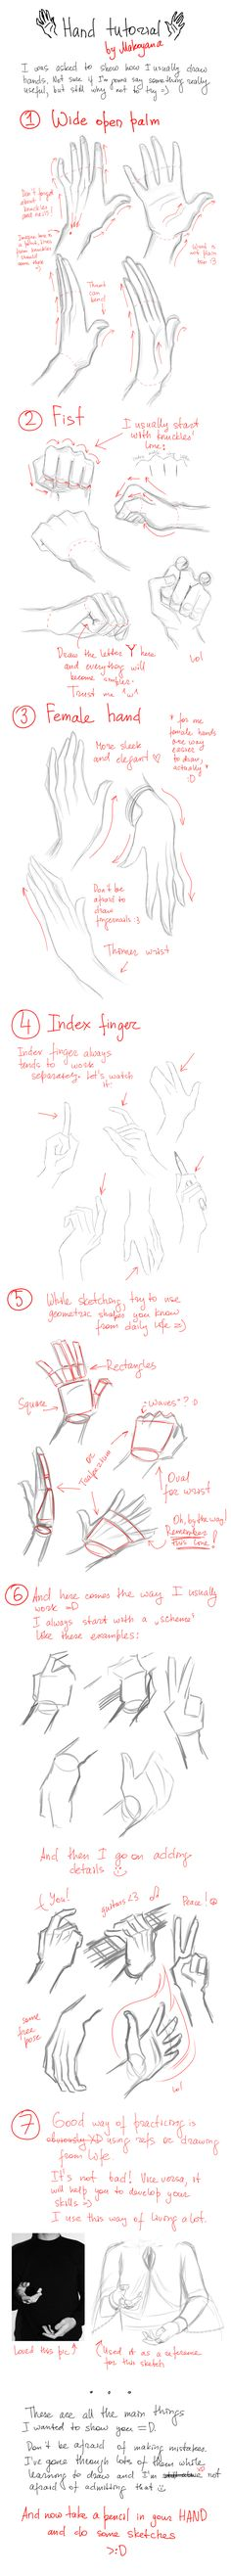 Hands tutorial by Makoyana.deviantart.com on @deviantART                                                                                                                                                      More